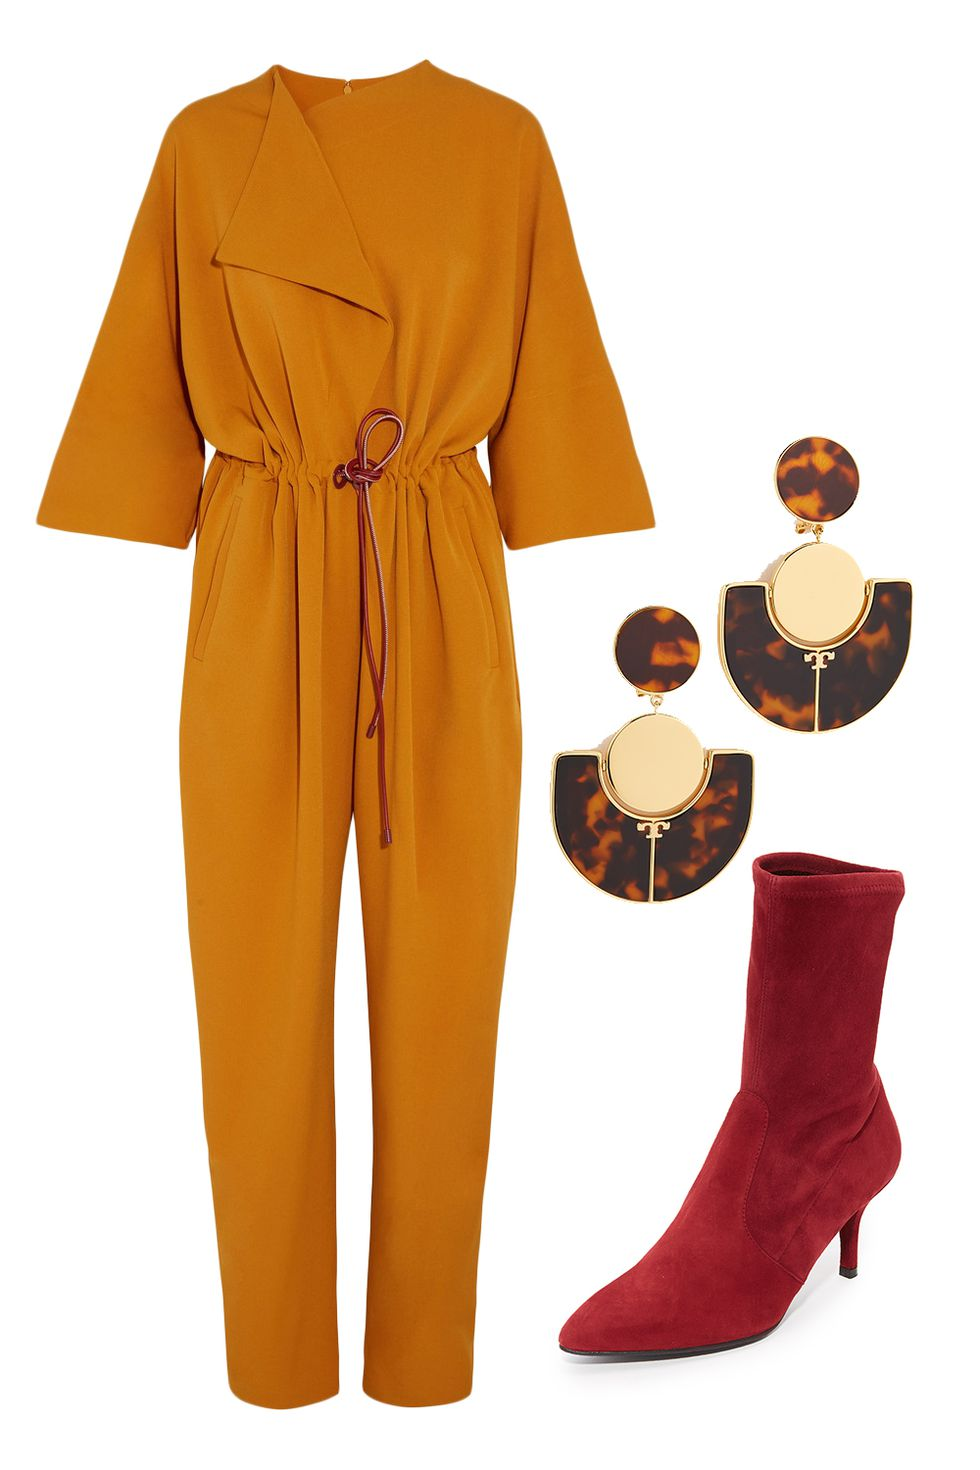 yellow-jumpsuit-earrings-red-shoe-booties-fall-winter-thanksgiving-outfits-holidays-dinner.jpg